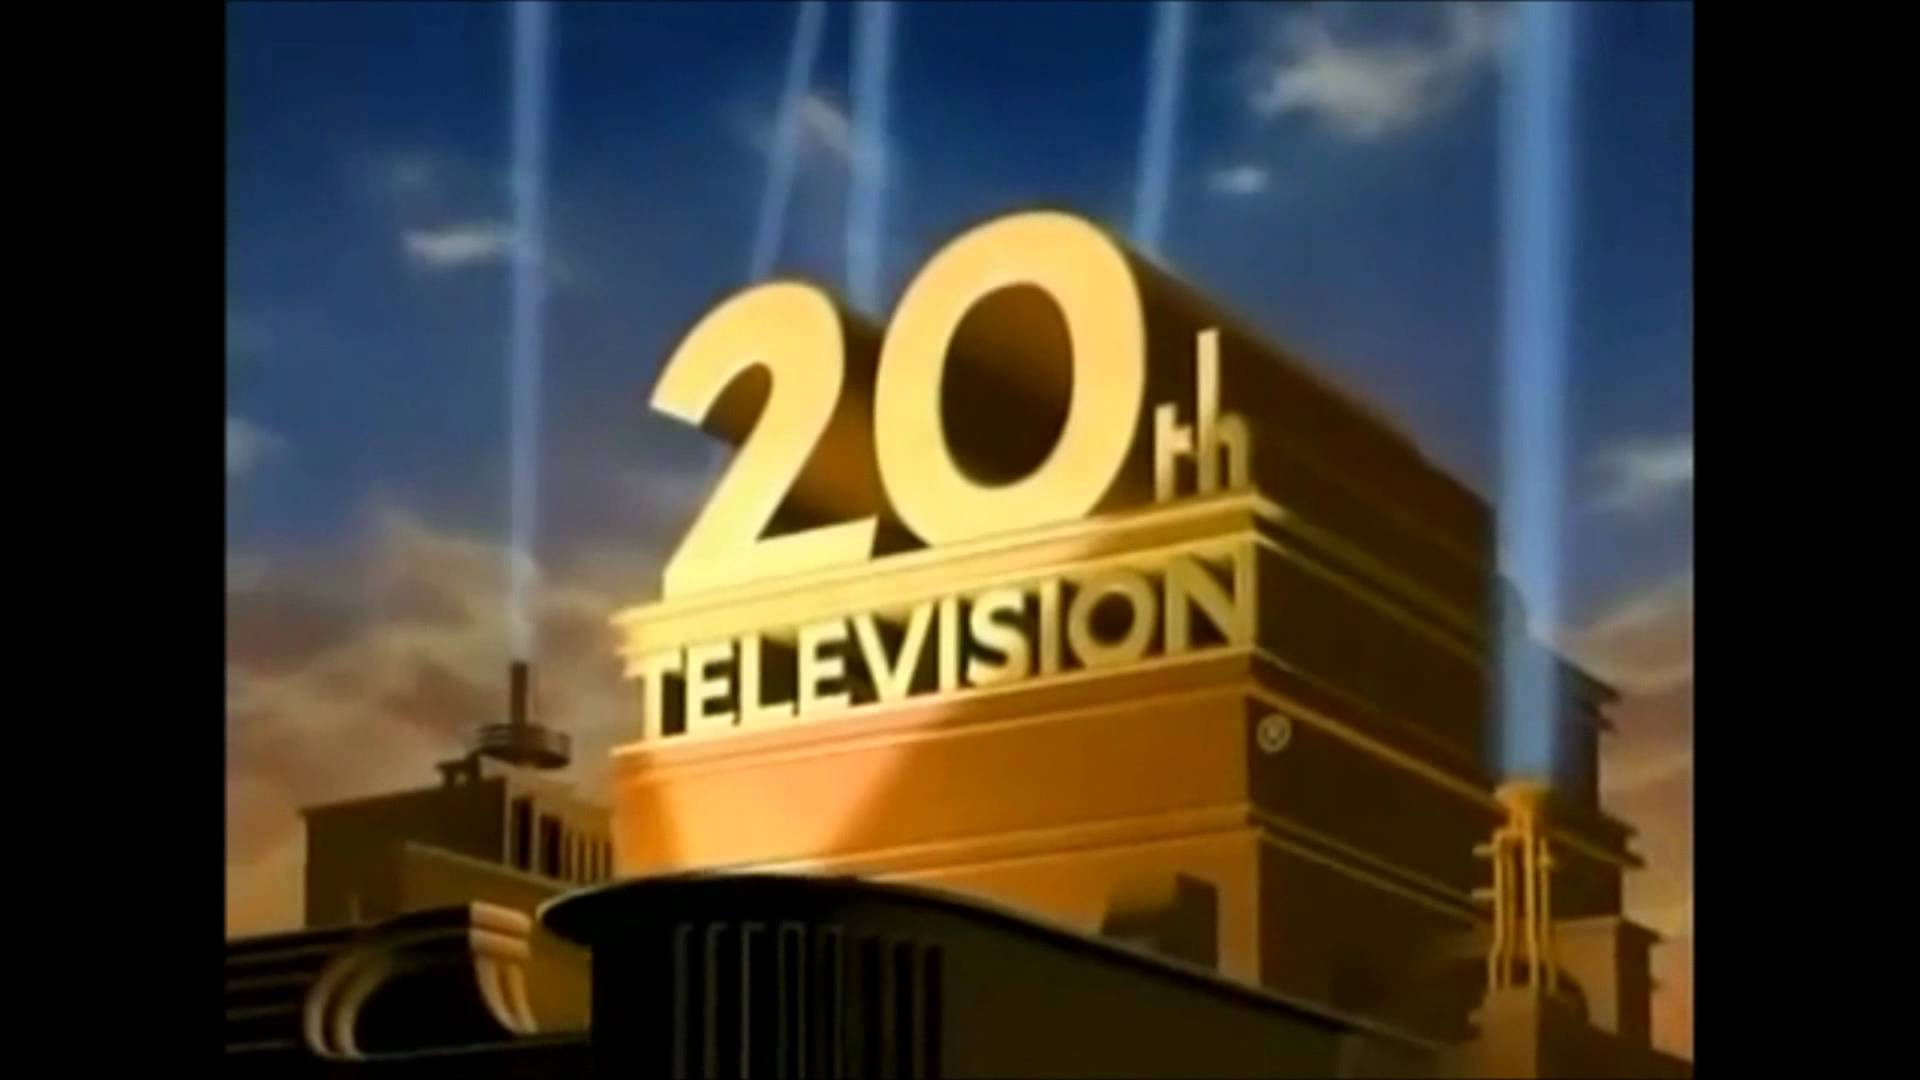 20th century fox television logo pc android iphone and ipad wallpapers 1920x1080